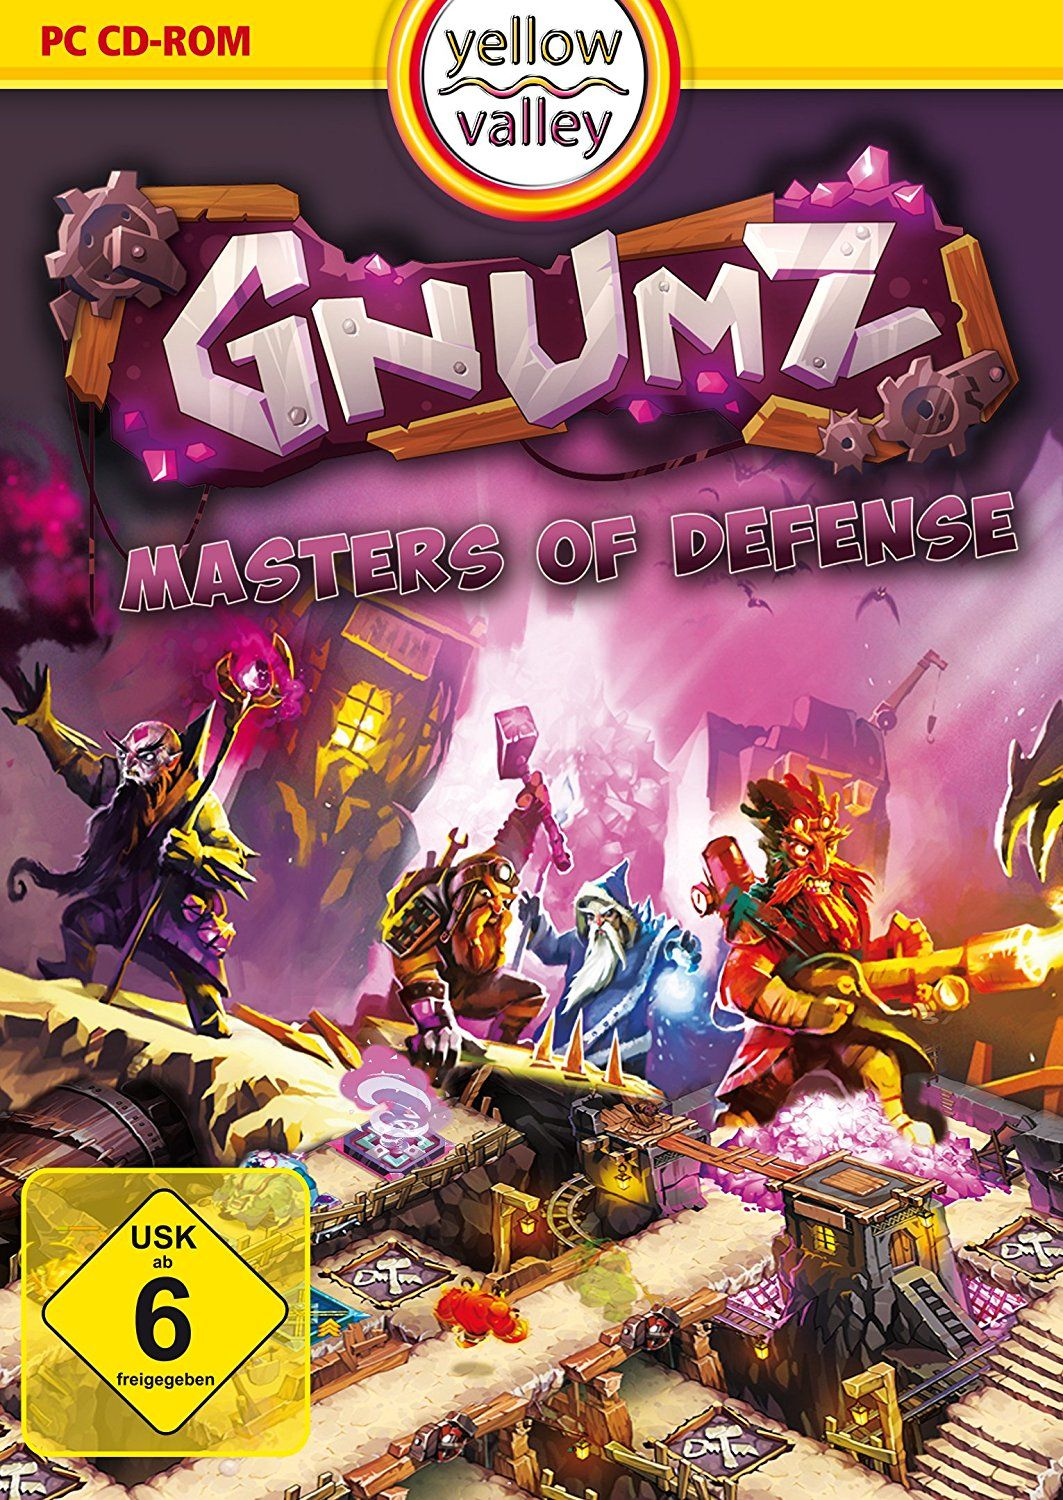 Gnumz: Master of Defense (Yellow Valley)